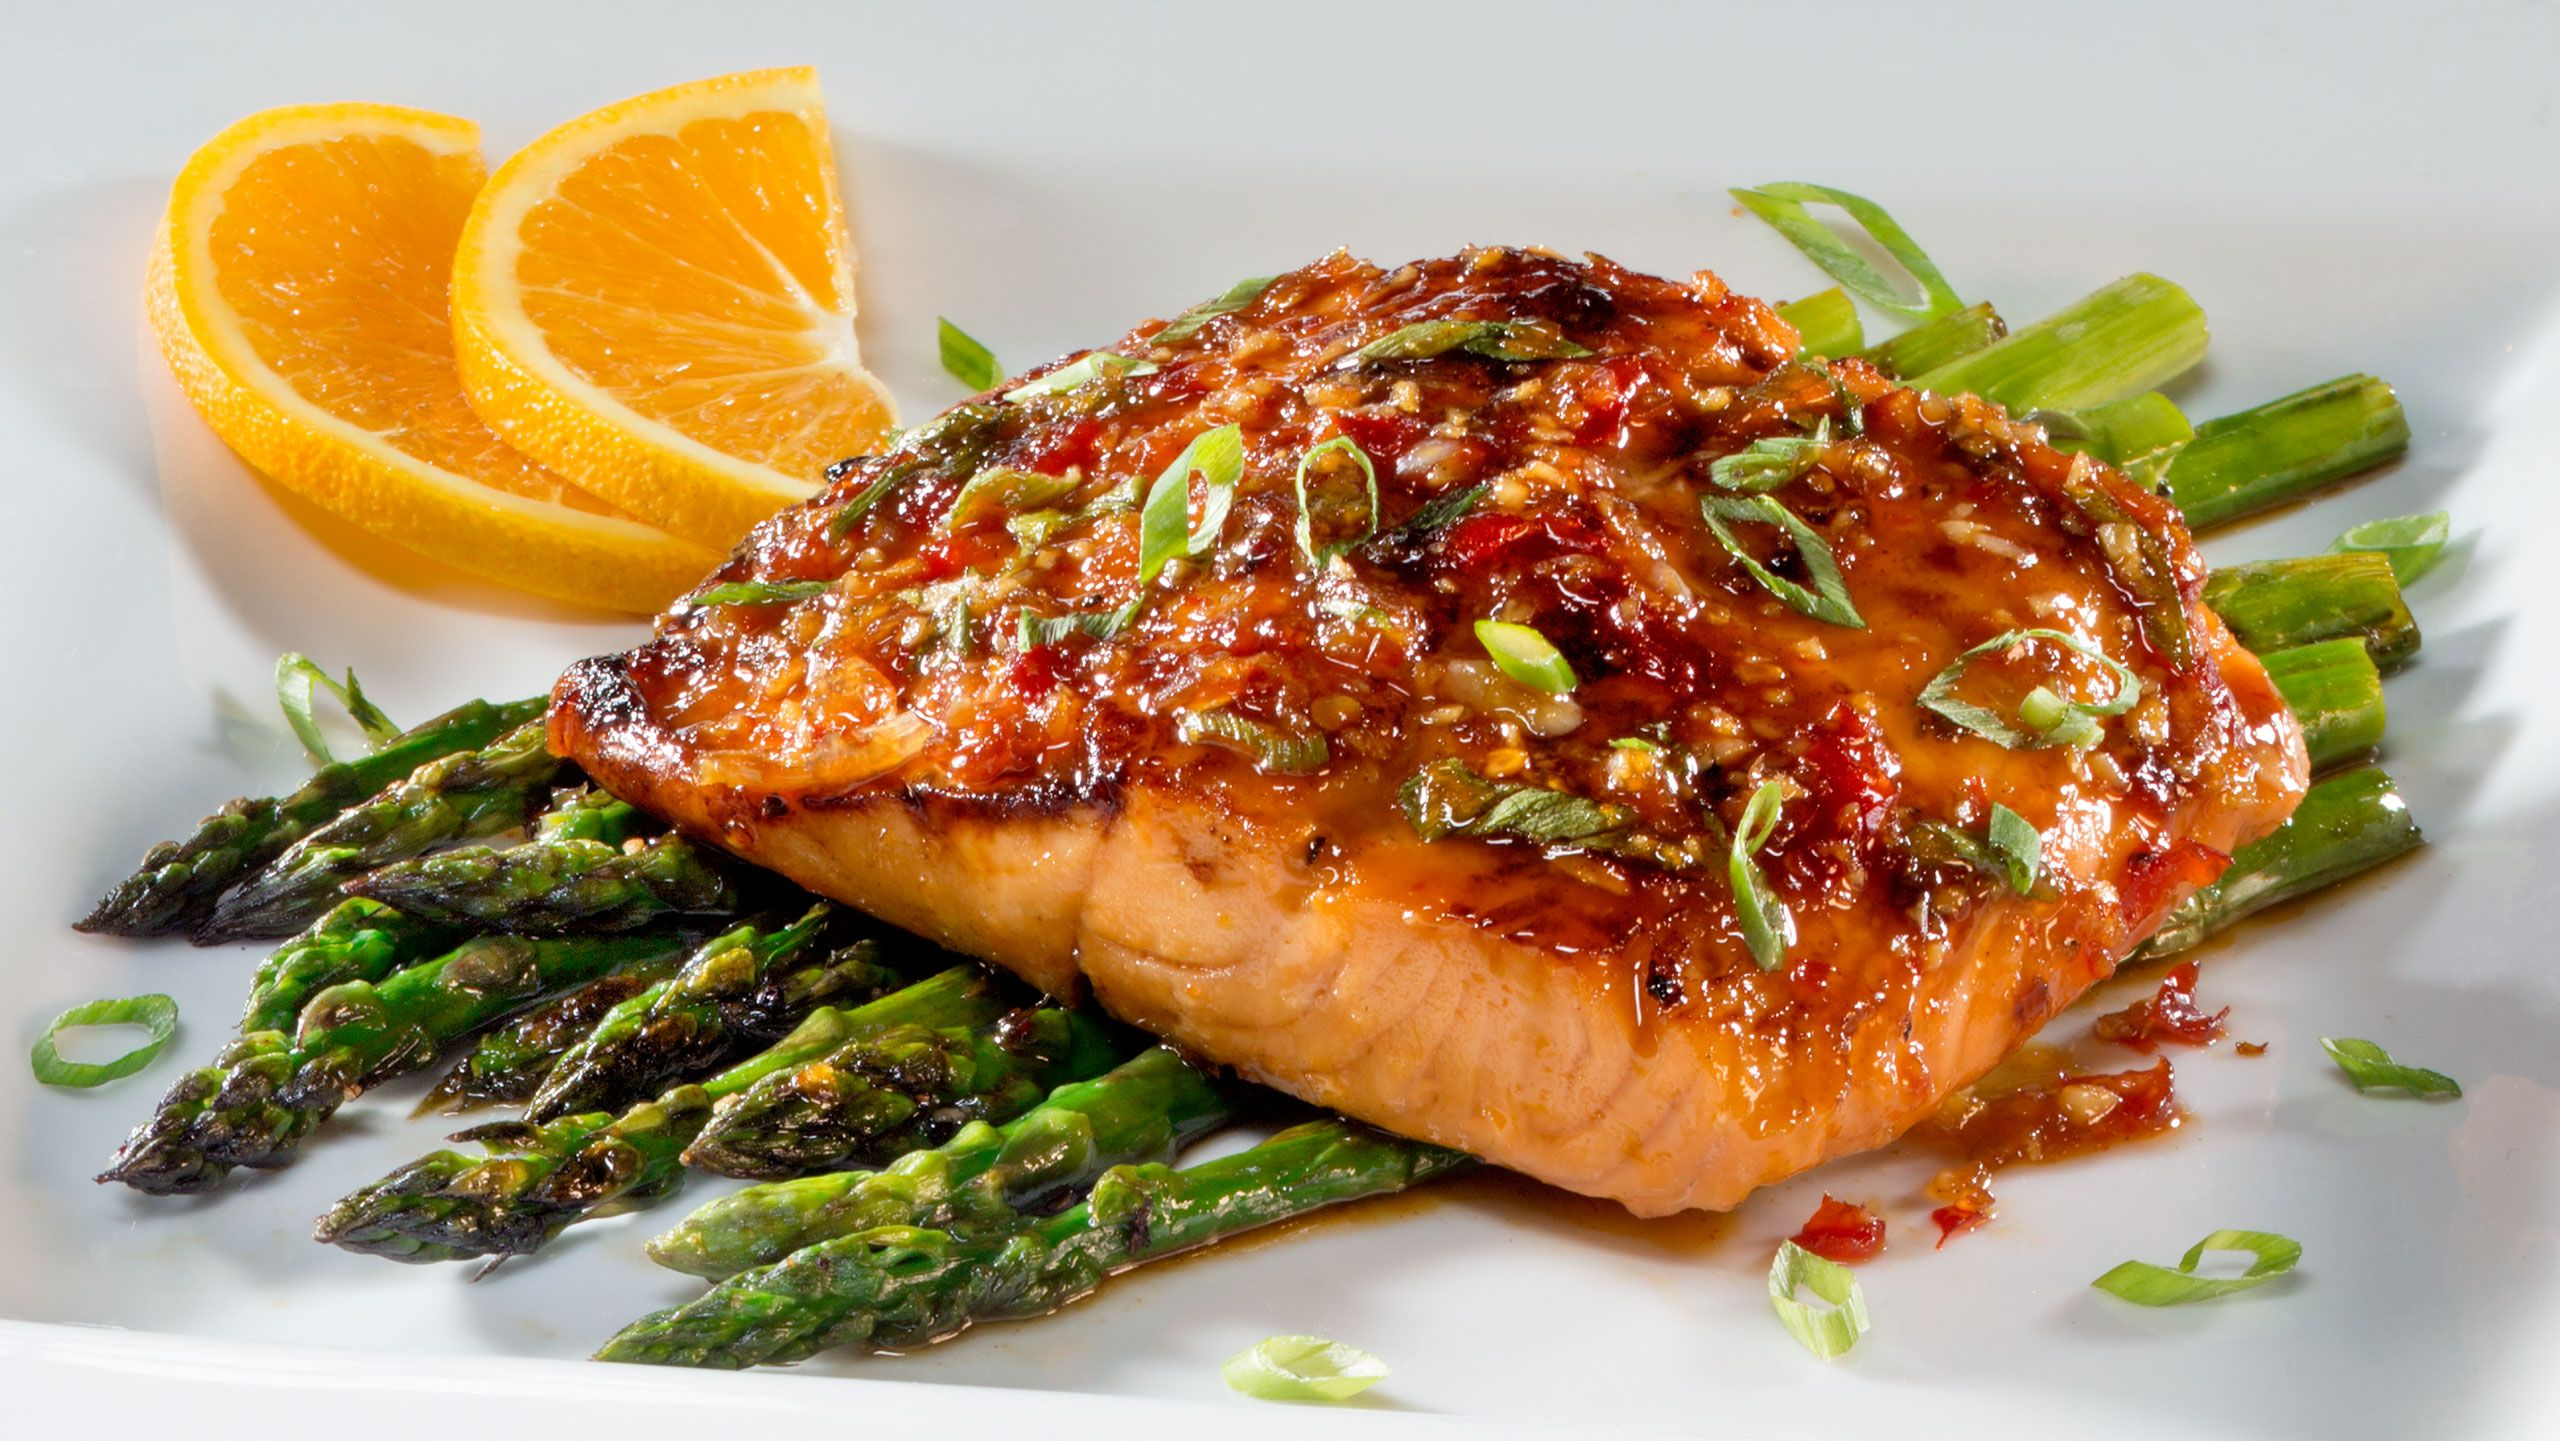 Ford's Garage Garlic Salmon with Asparagus by Florida commercial food photographer